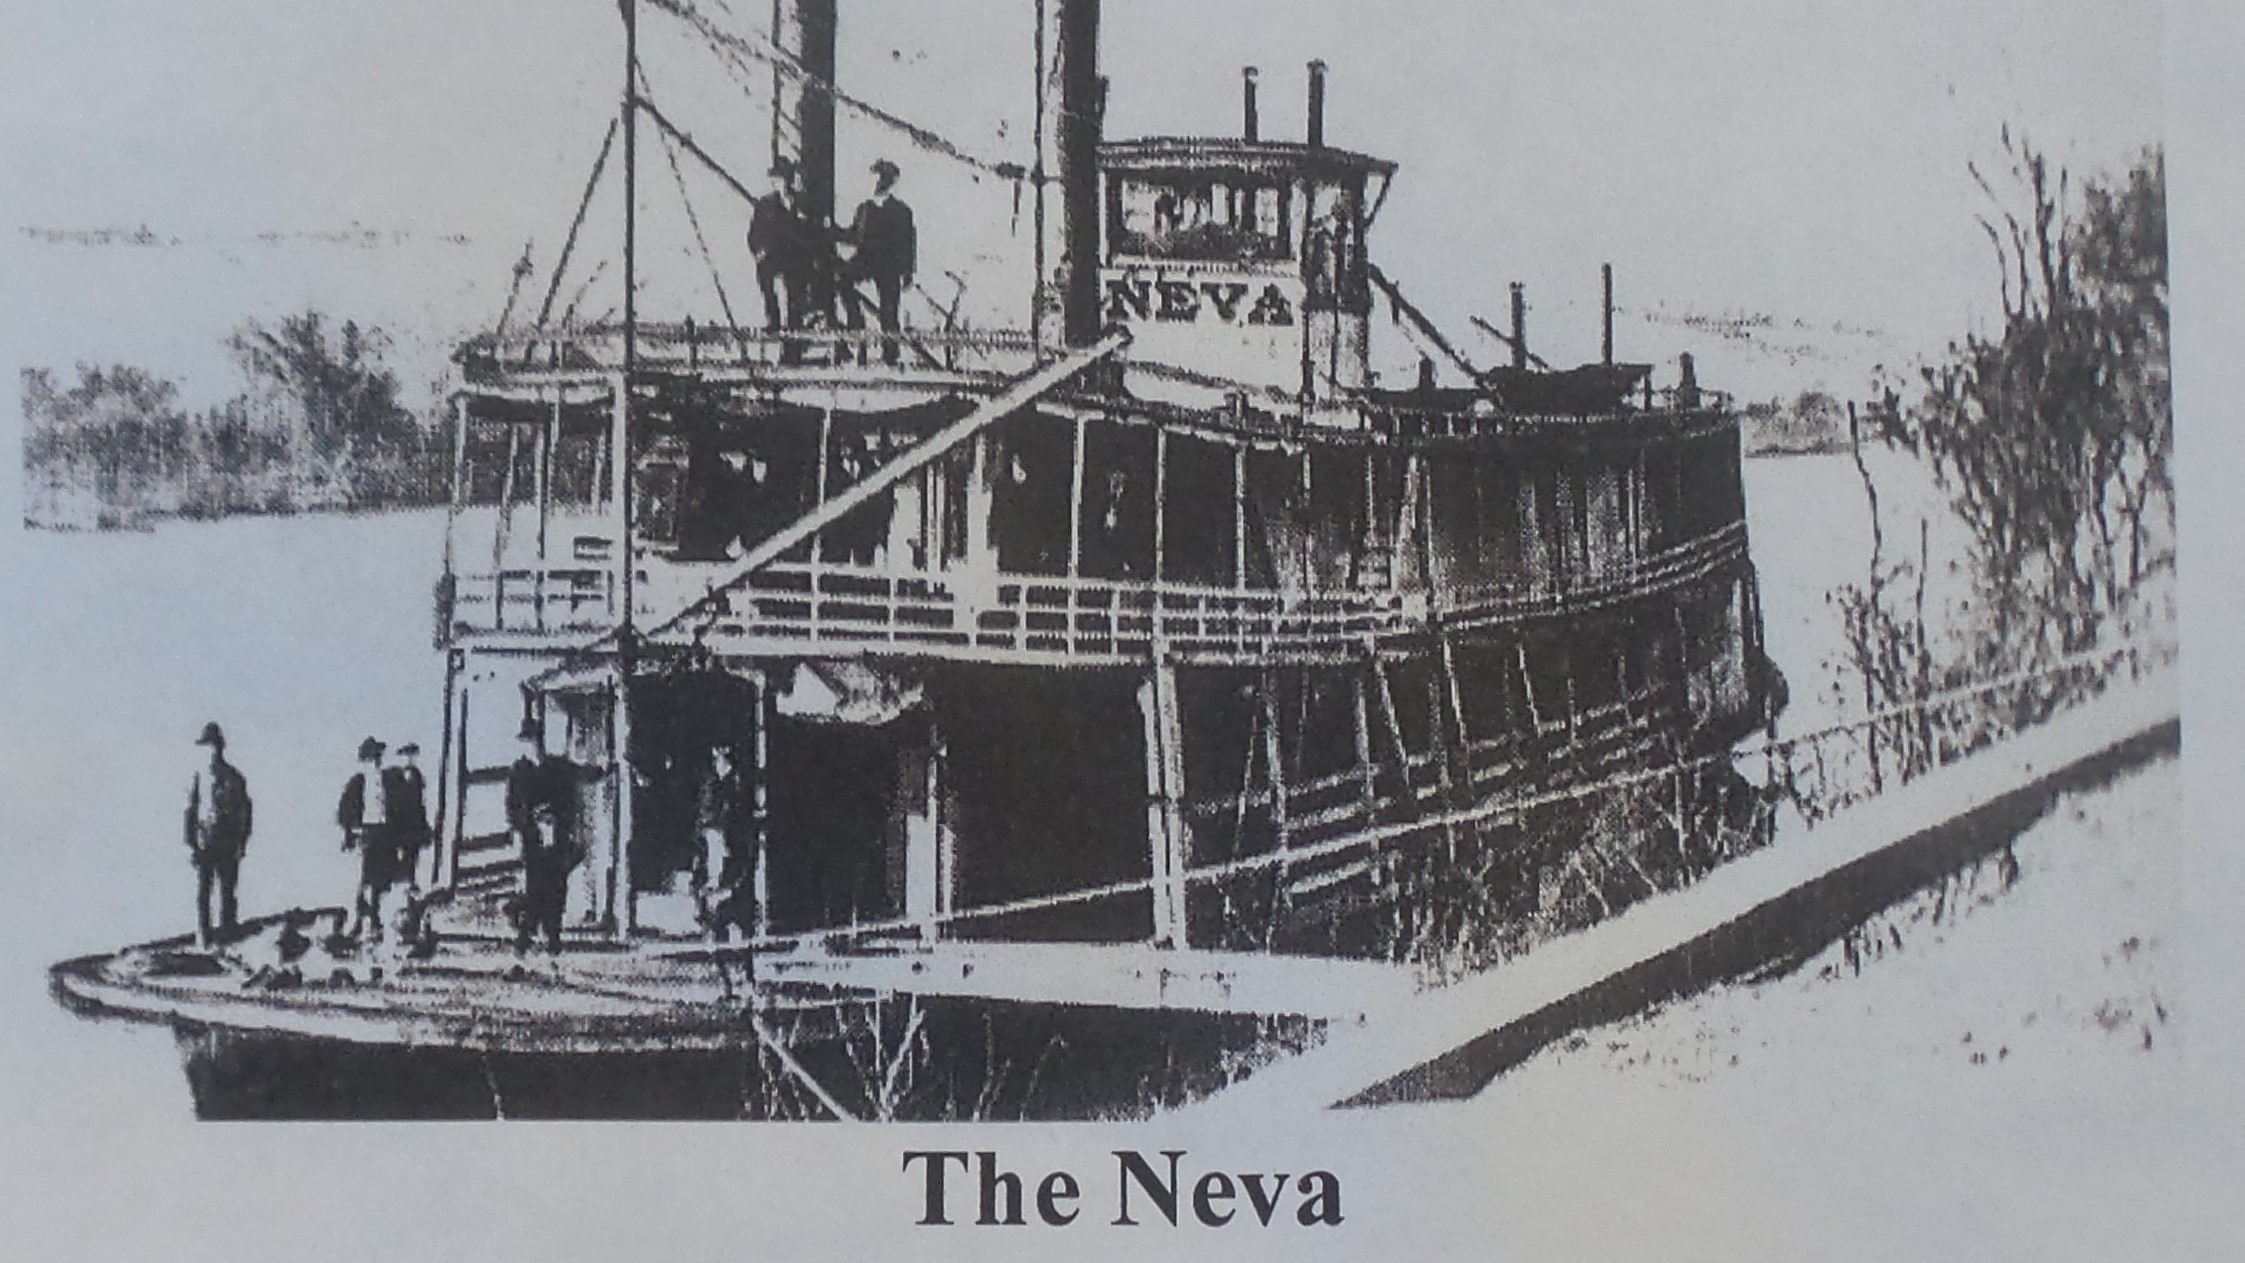 The Neva, burnt at Buffalo on July 26th 1908